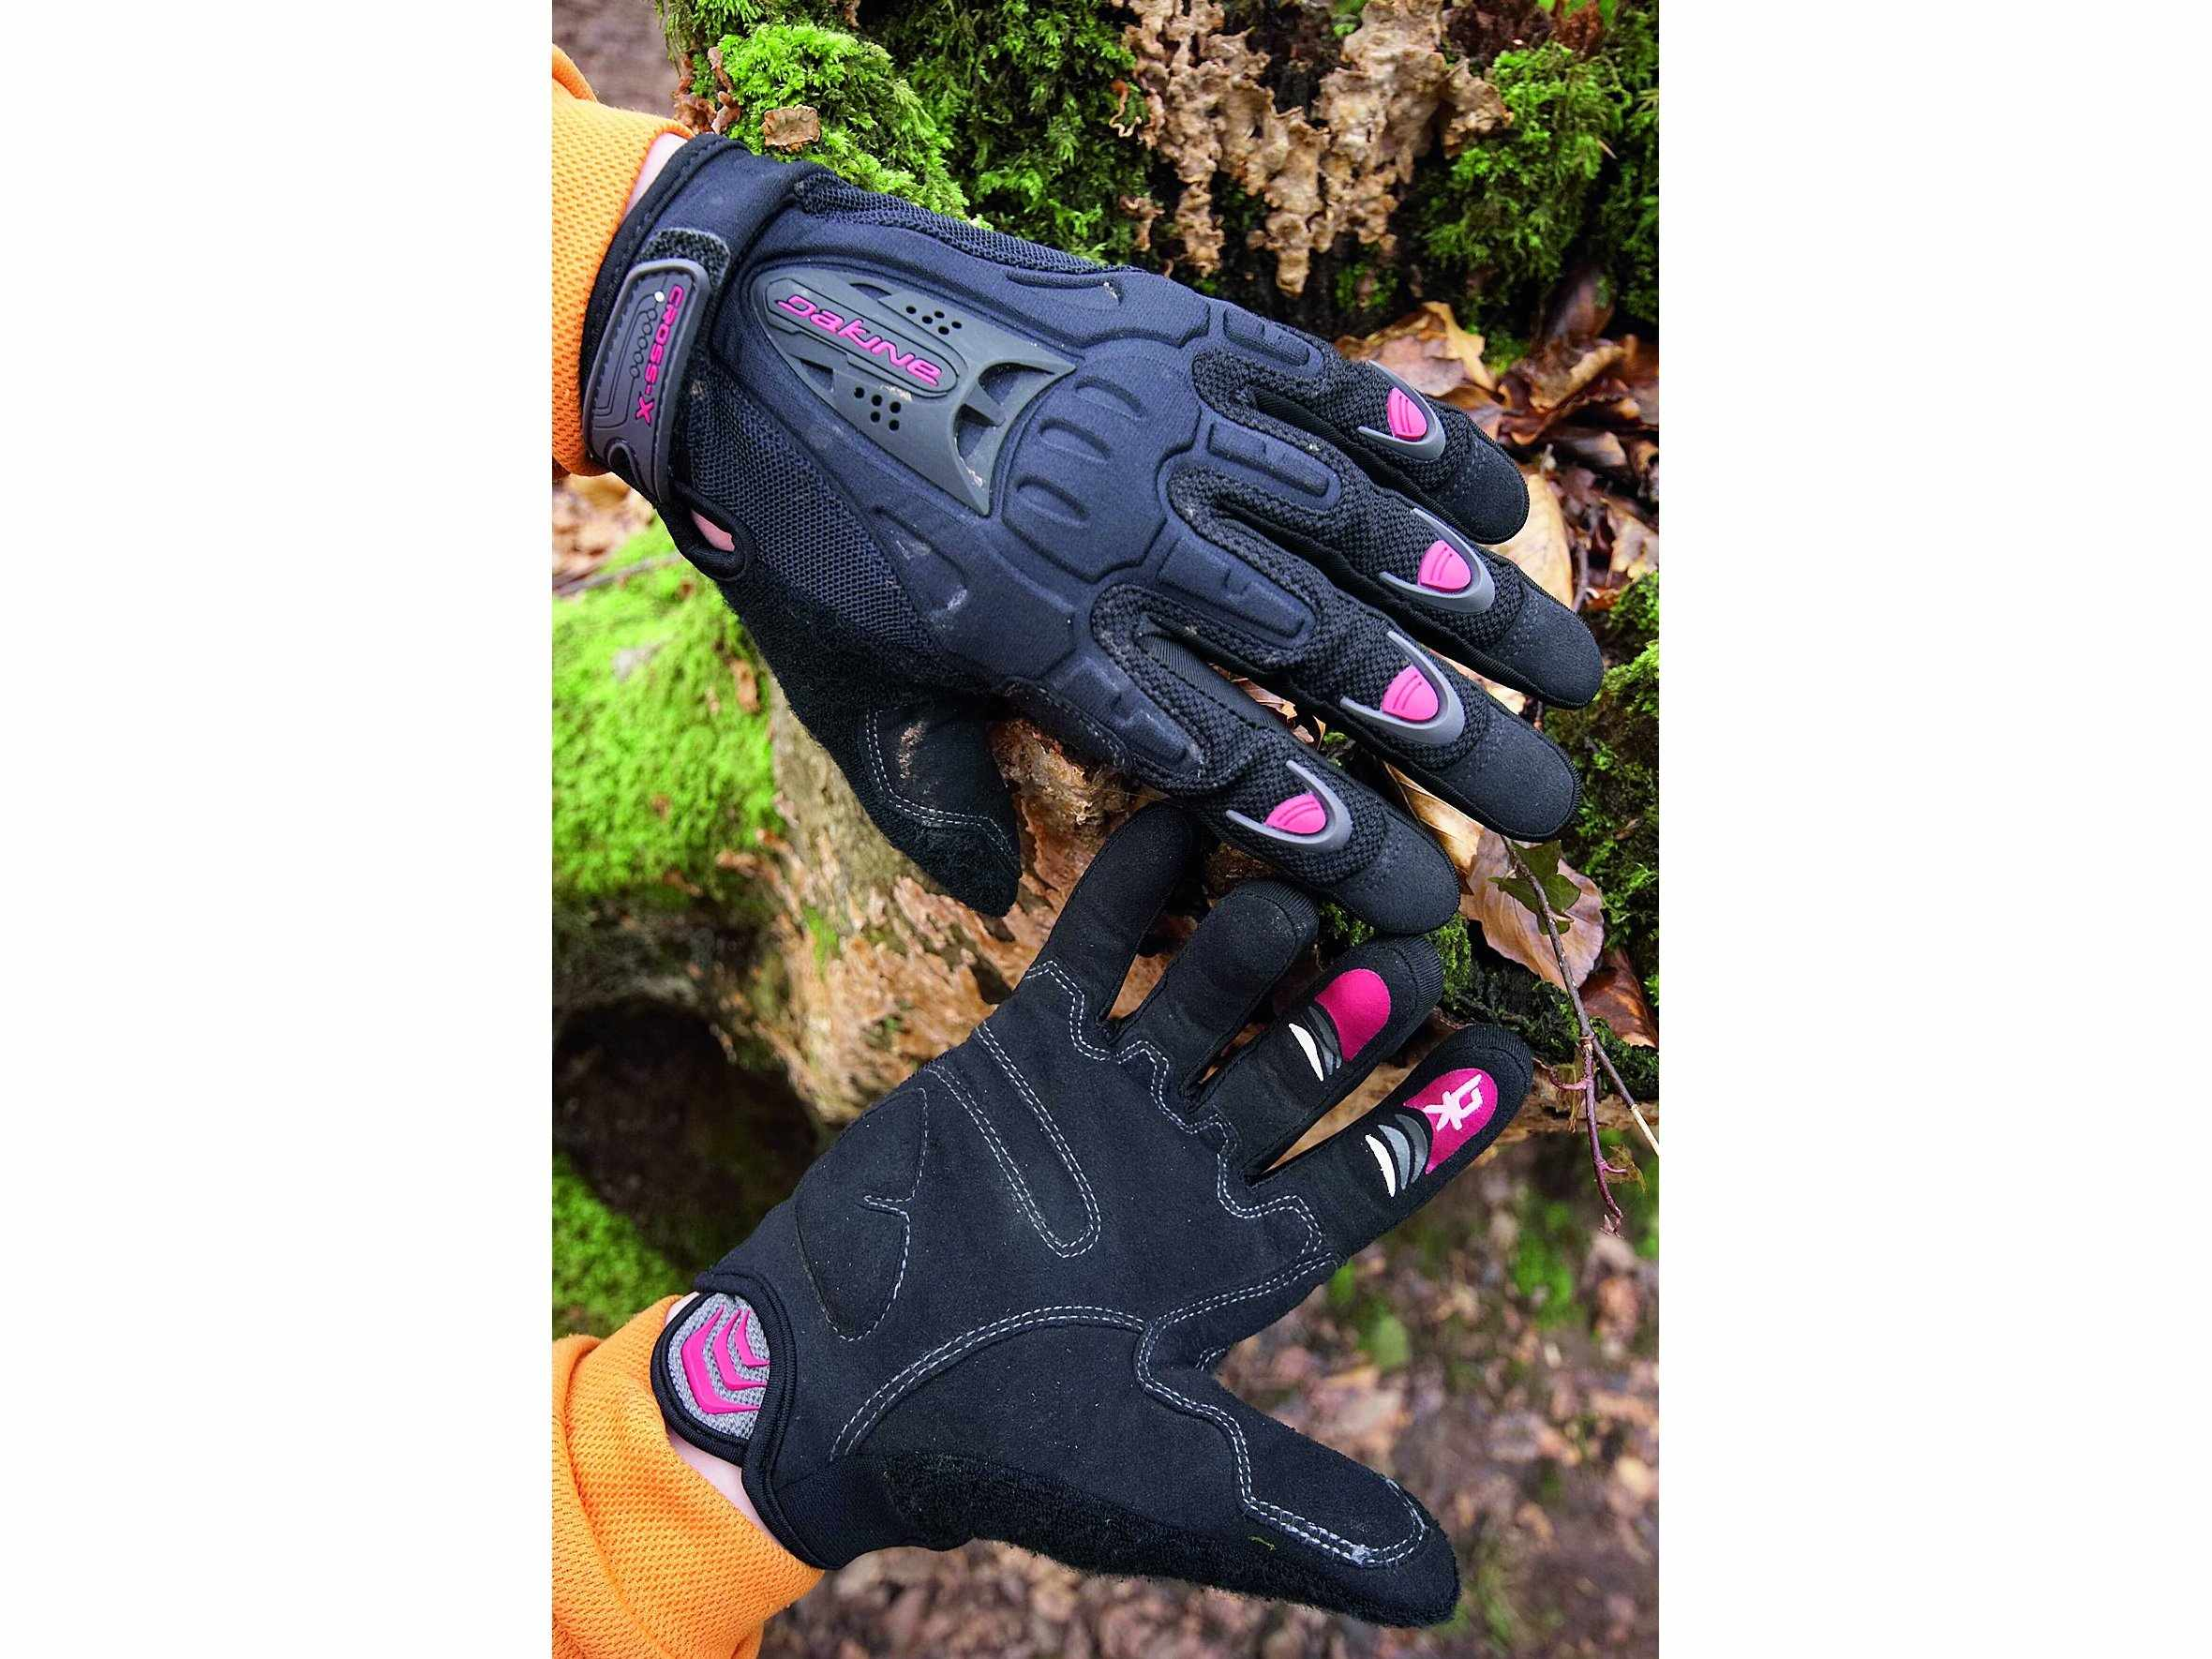 Dakine Women's Cross-X gloves